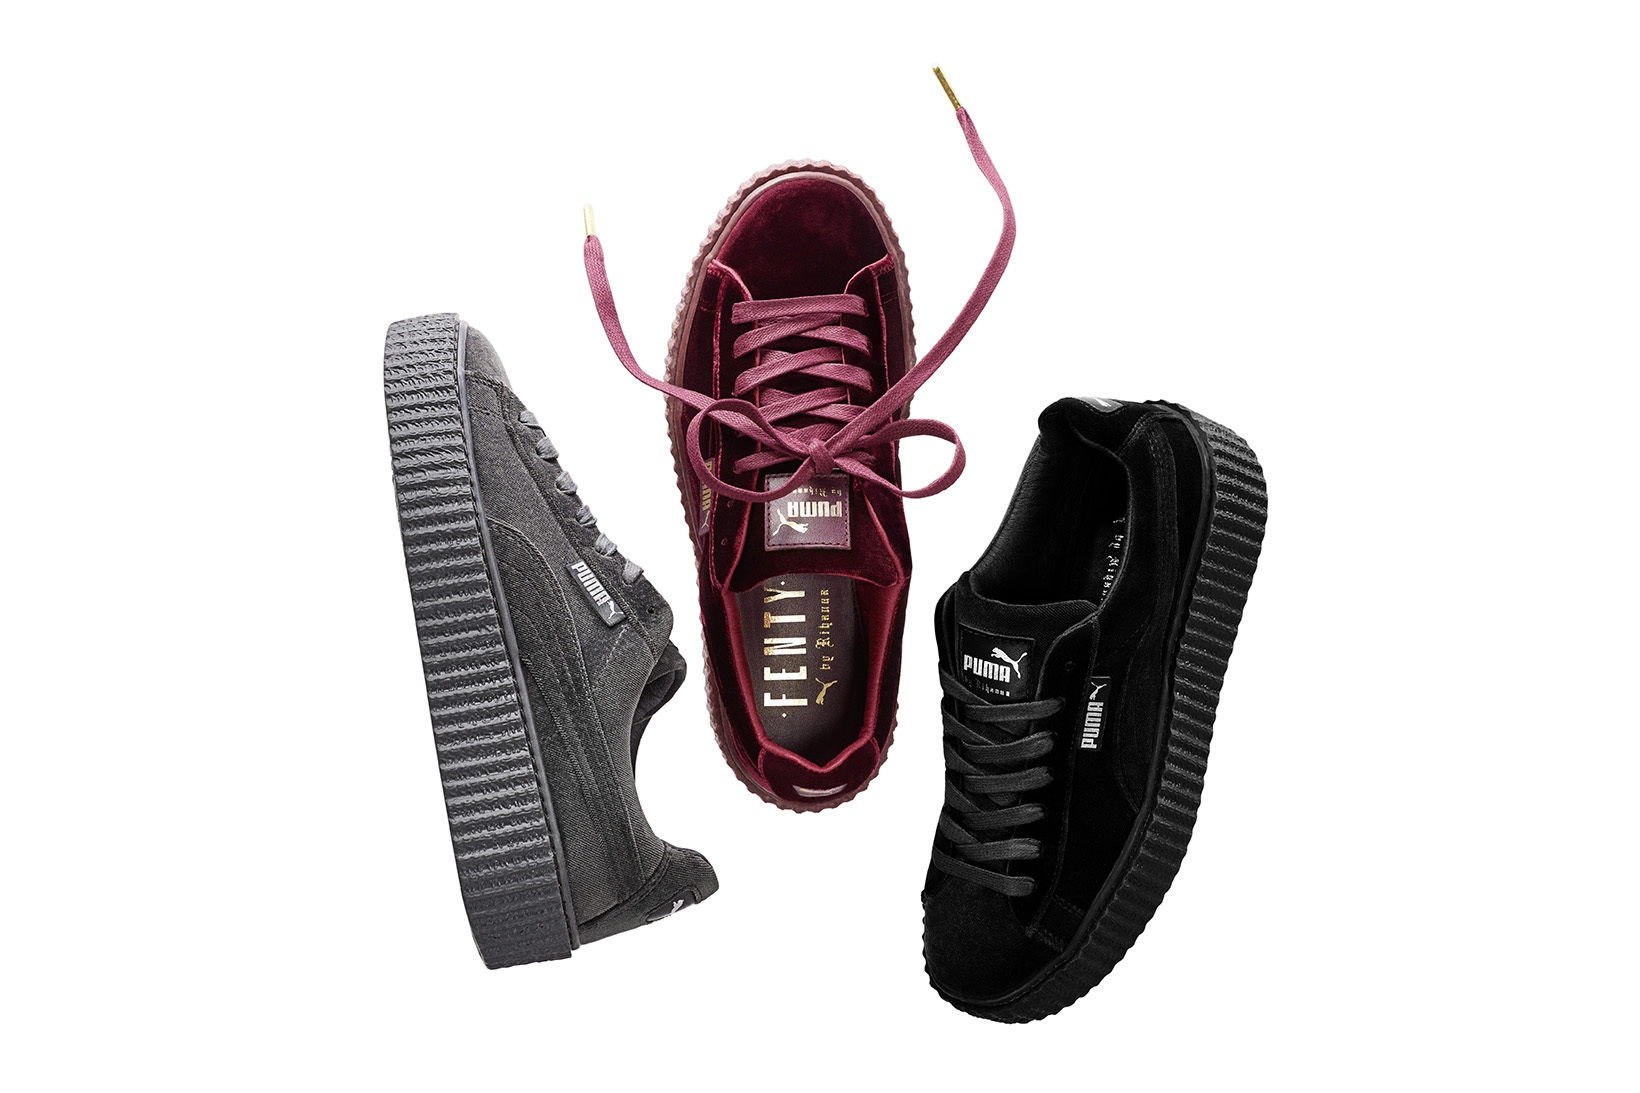 Chaussures Puma X Fenty Rihanna Creepers Velvet Gris